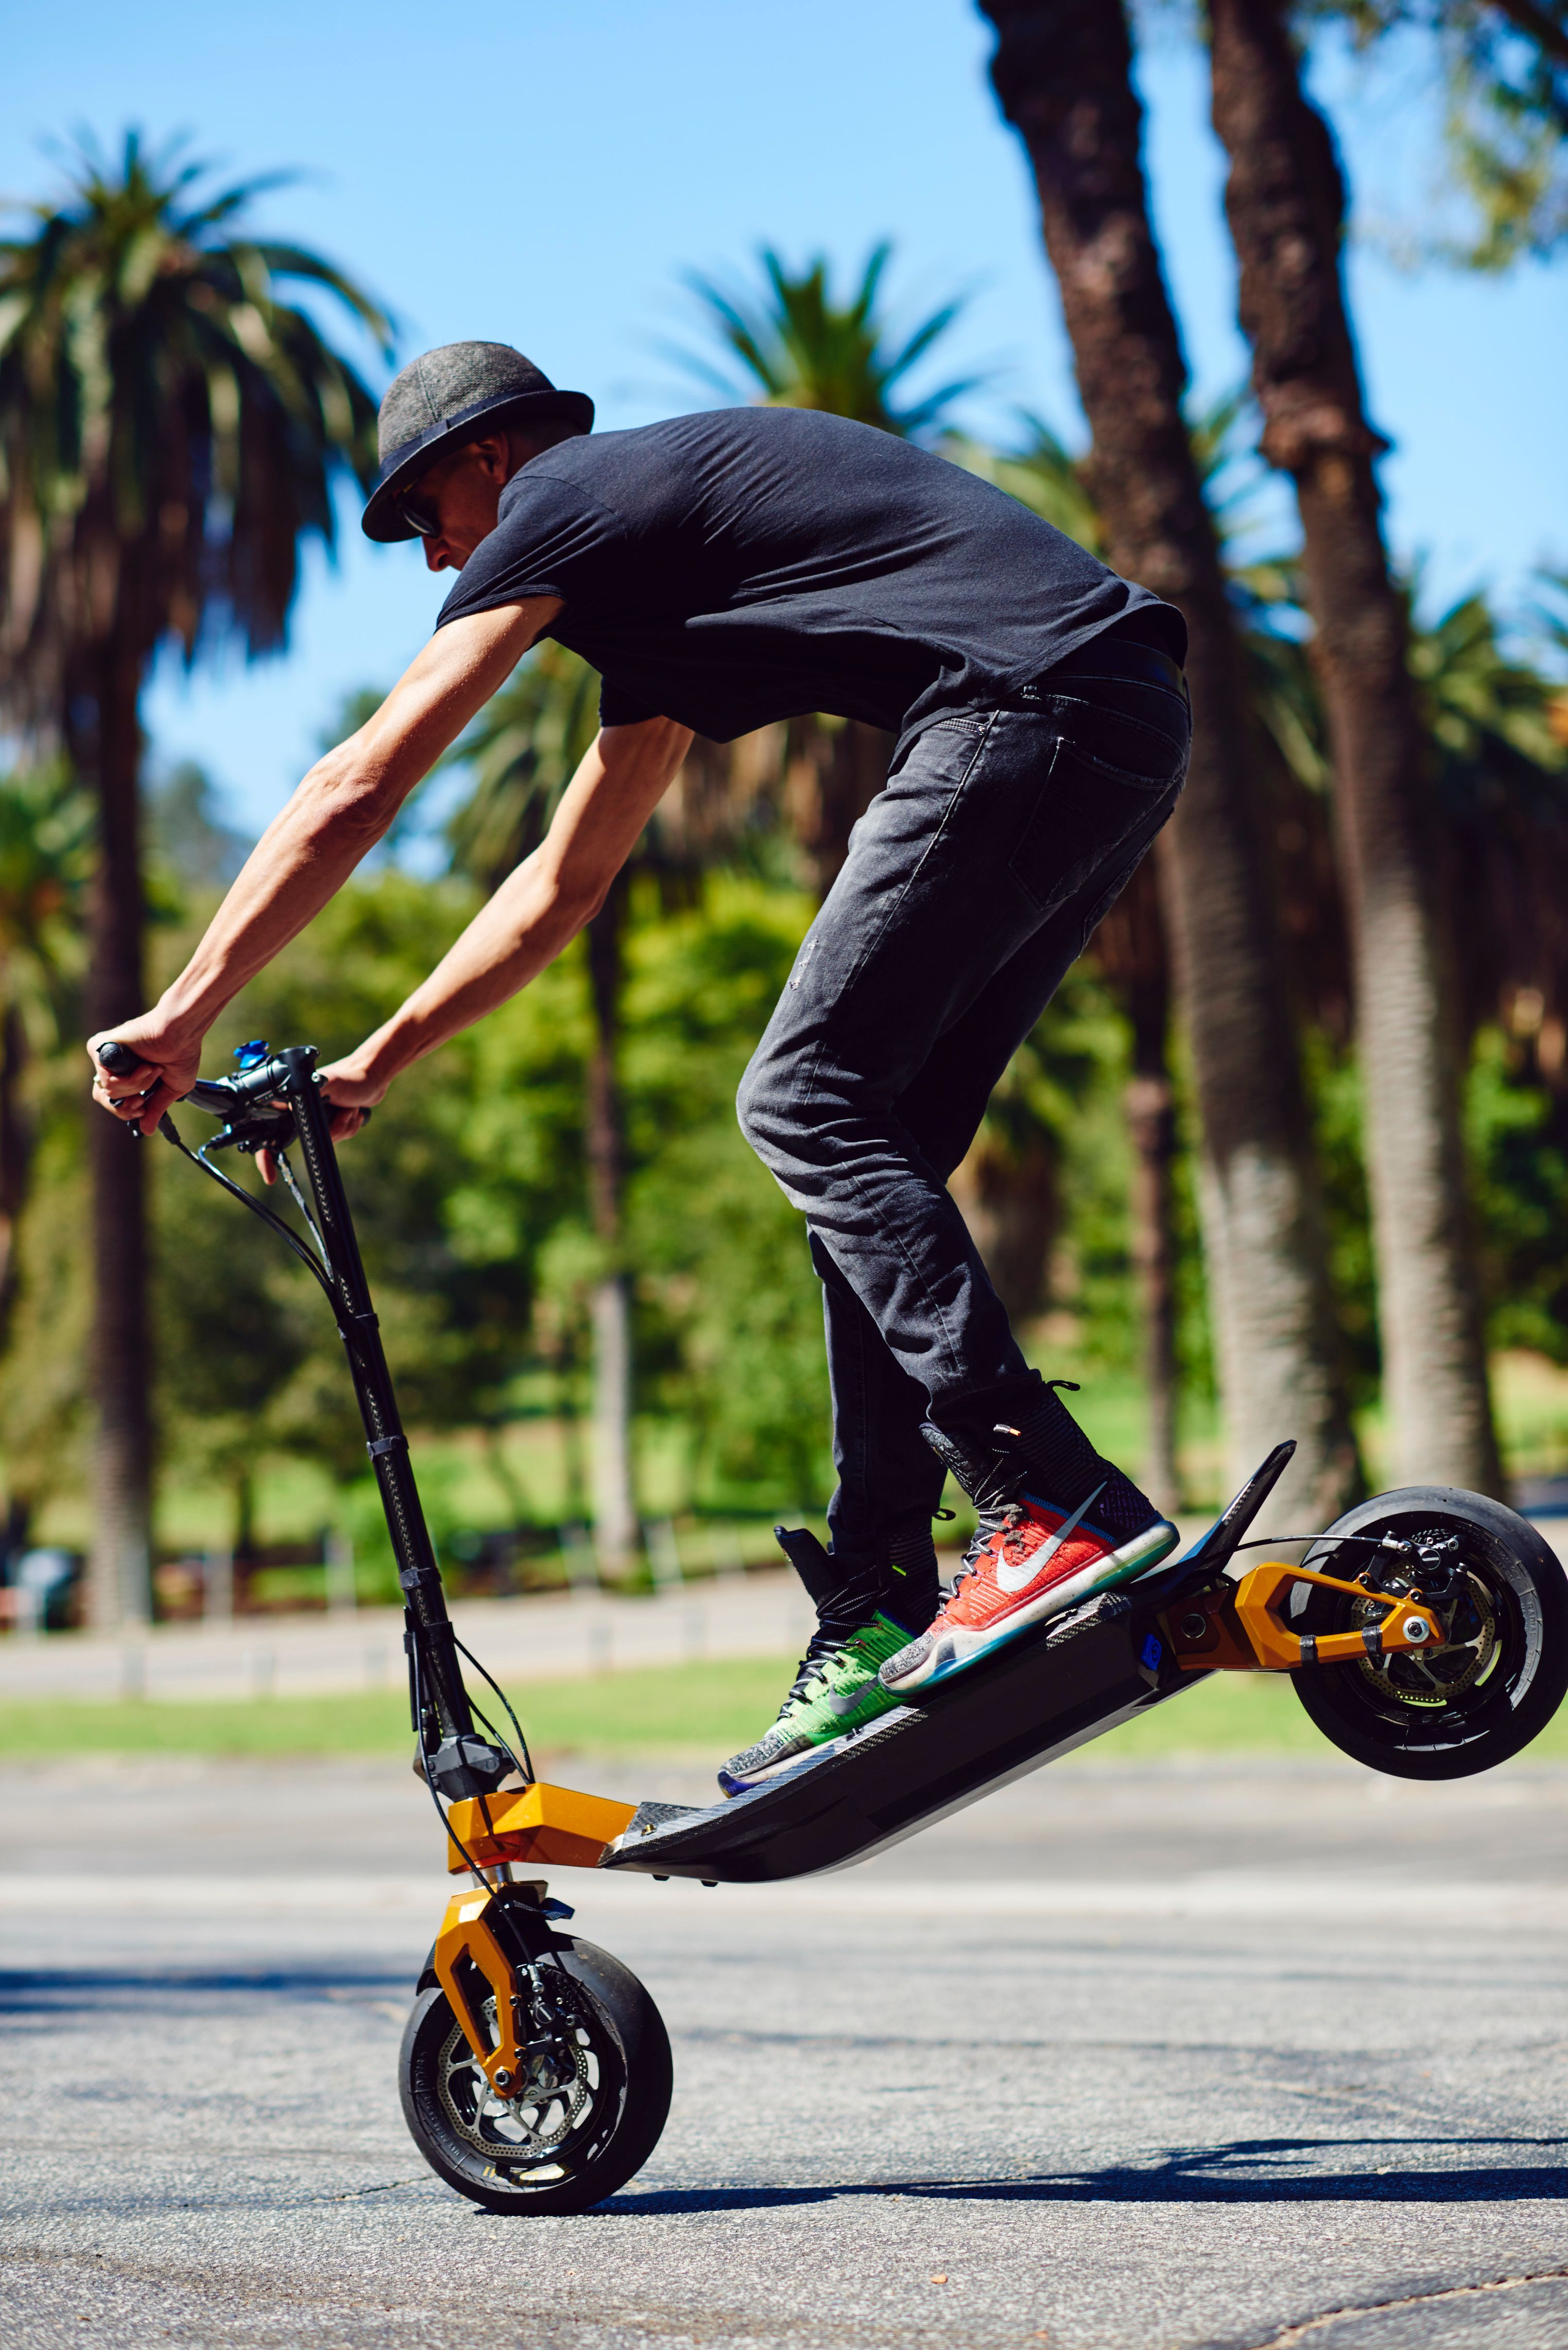 The Ultra High Performance Full Carbon Fiber Electric Scooter